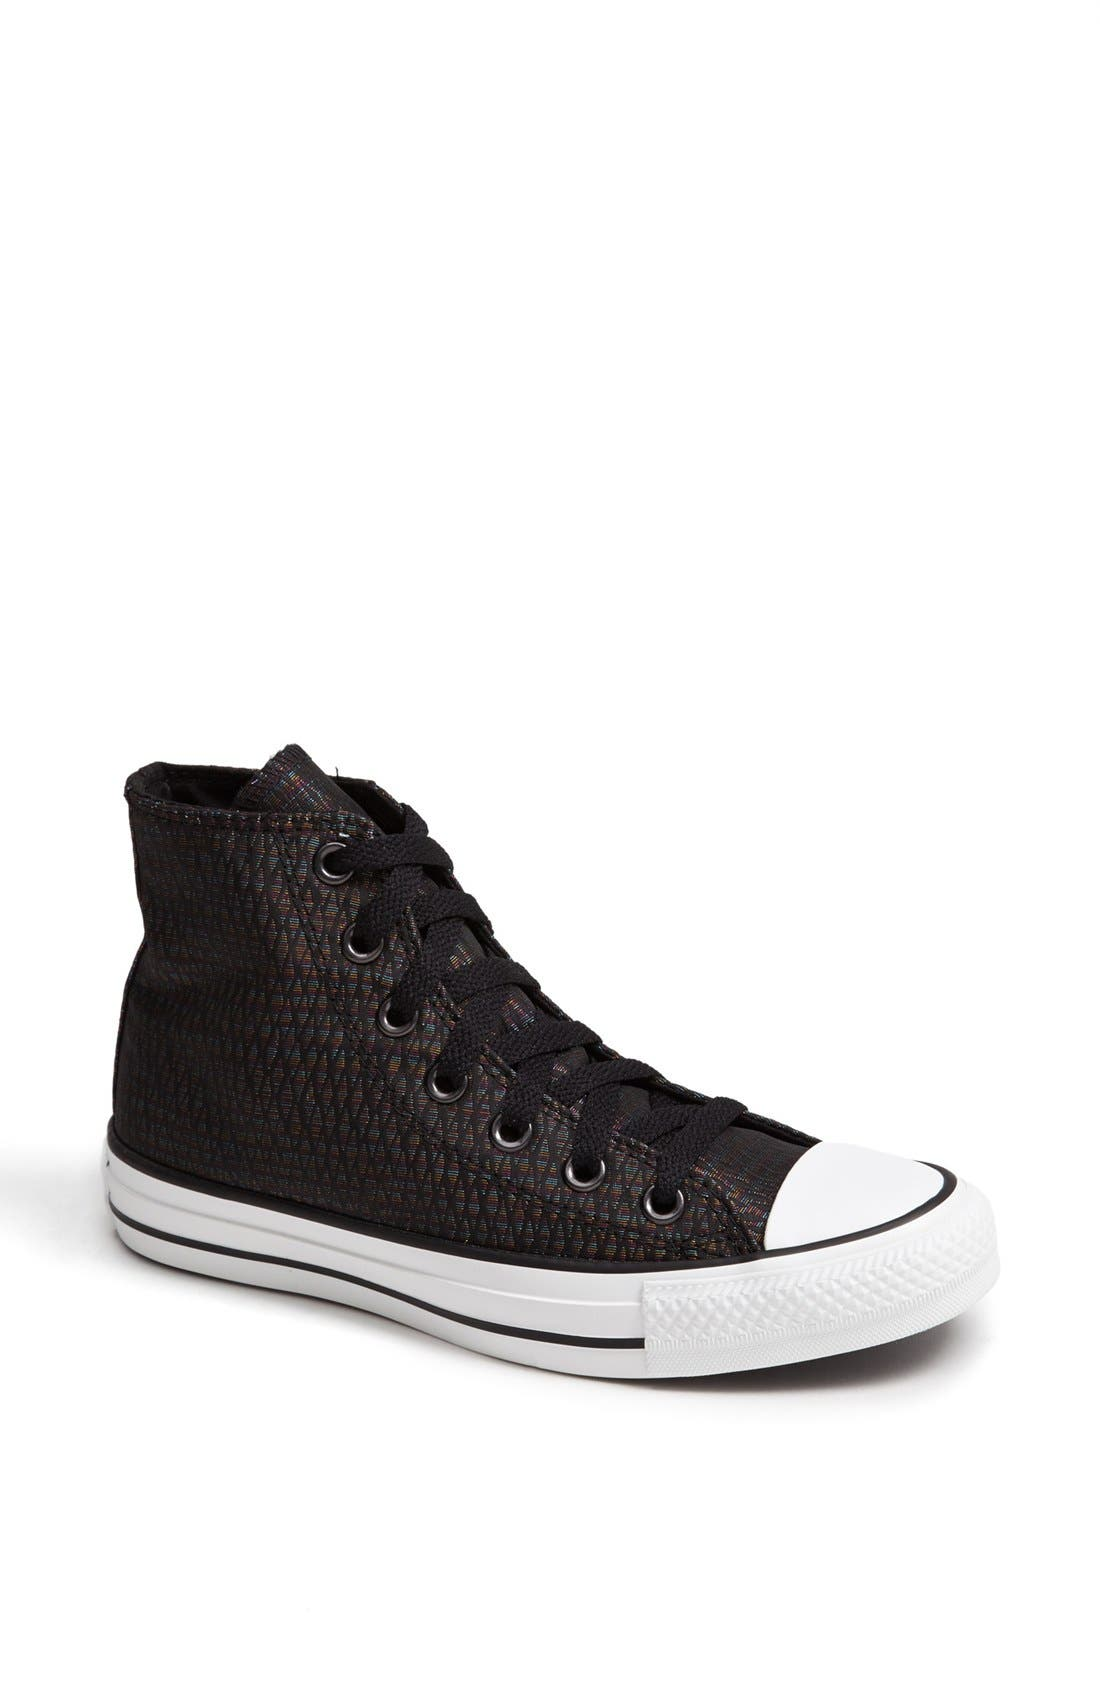 Alternate Image 1 Selected - Converse Chuck Taylor® All Star High Top Sneaker (Women)